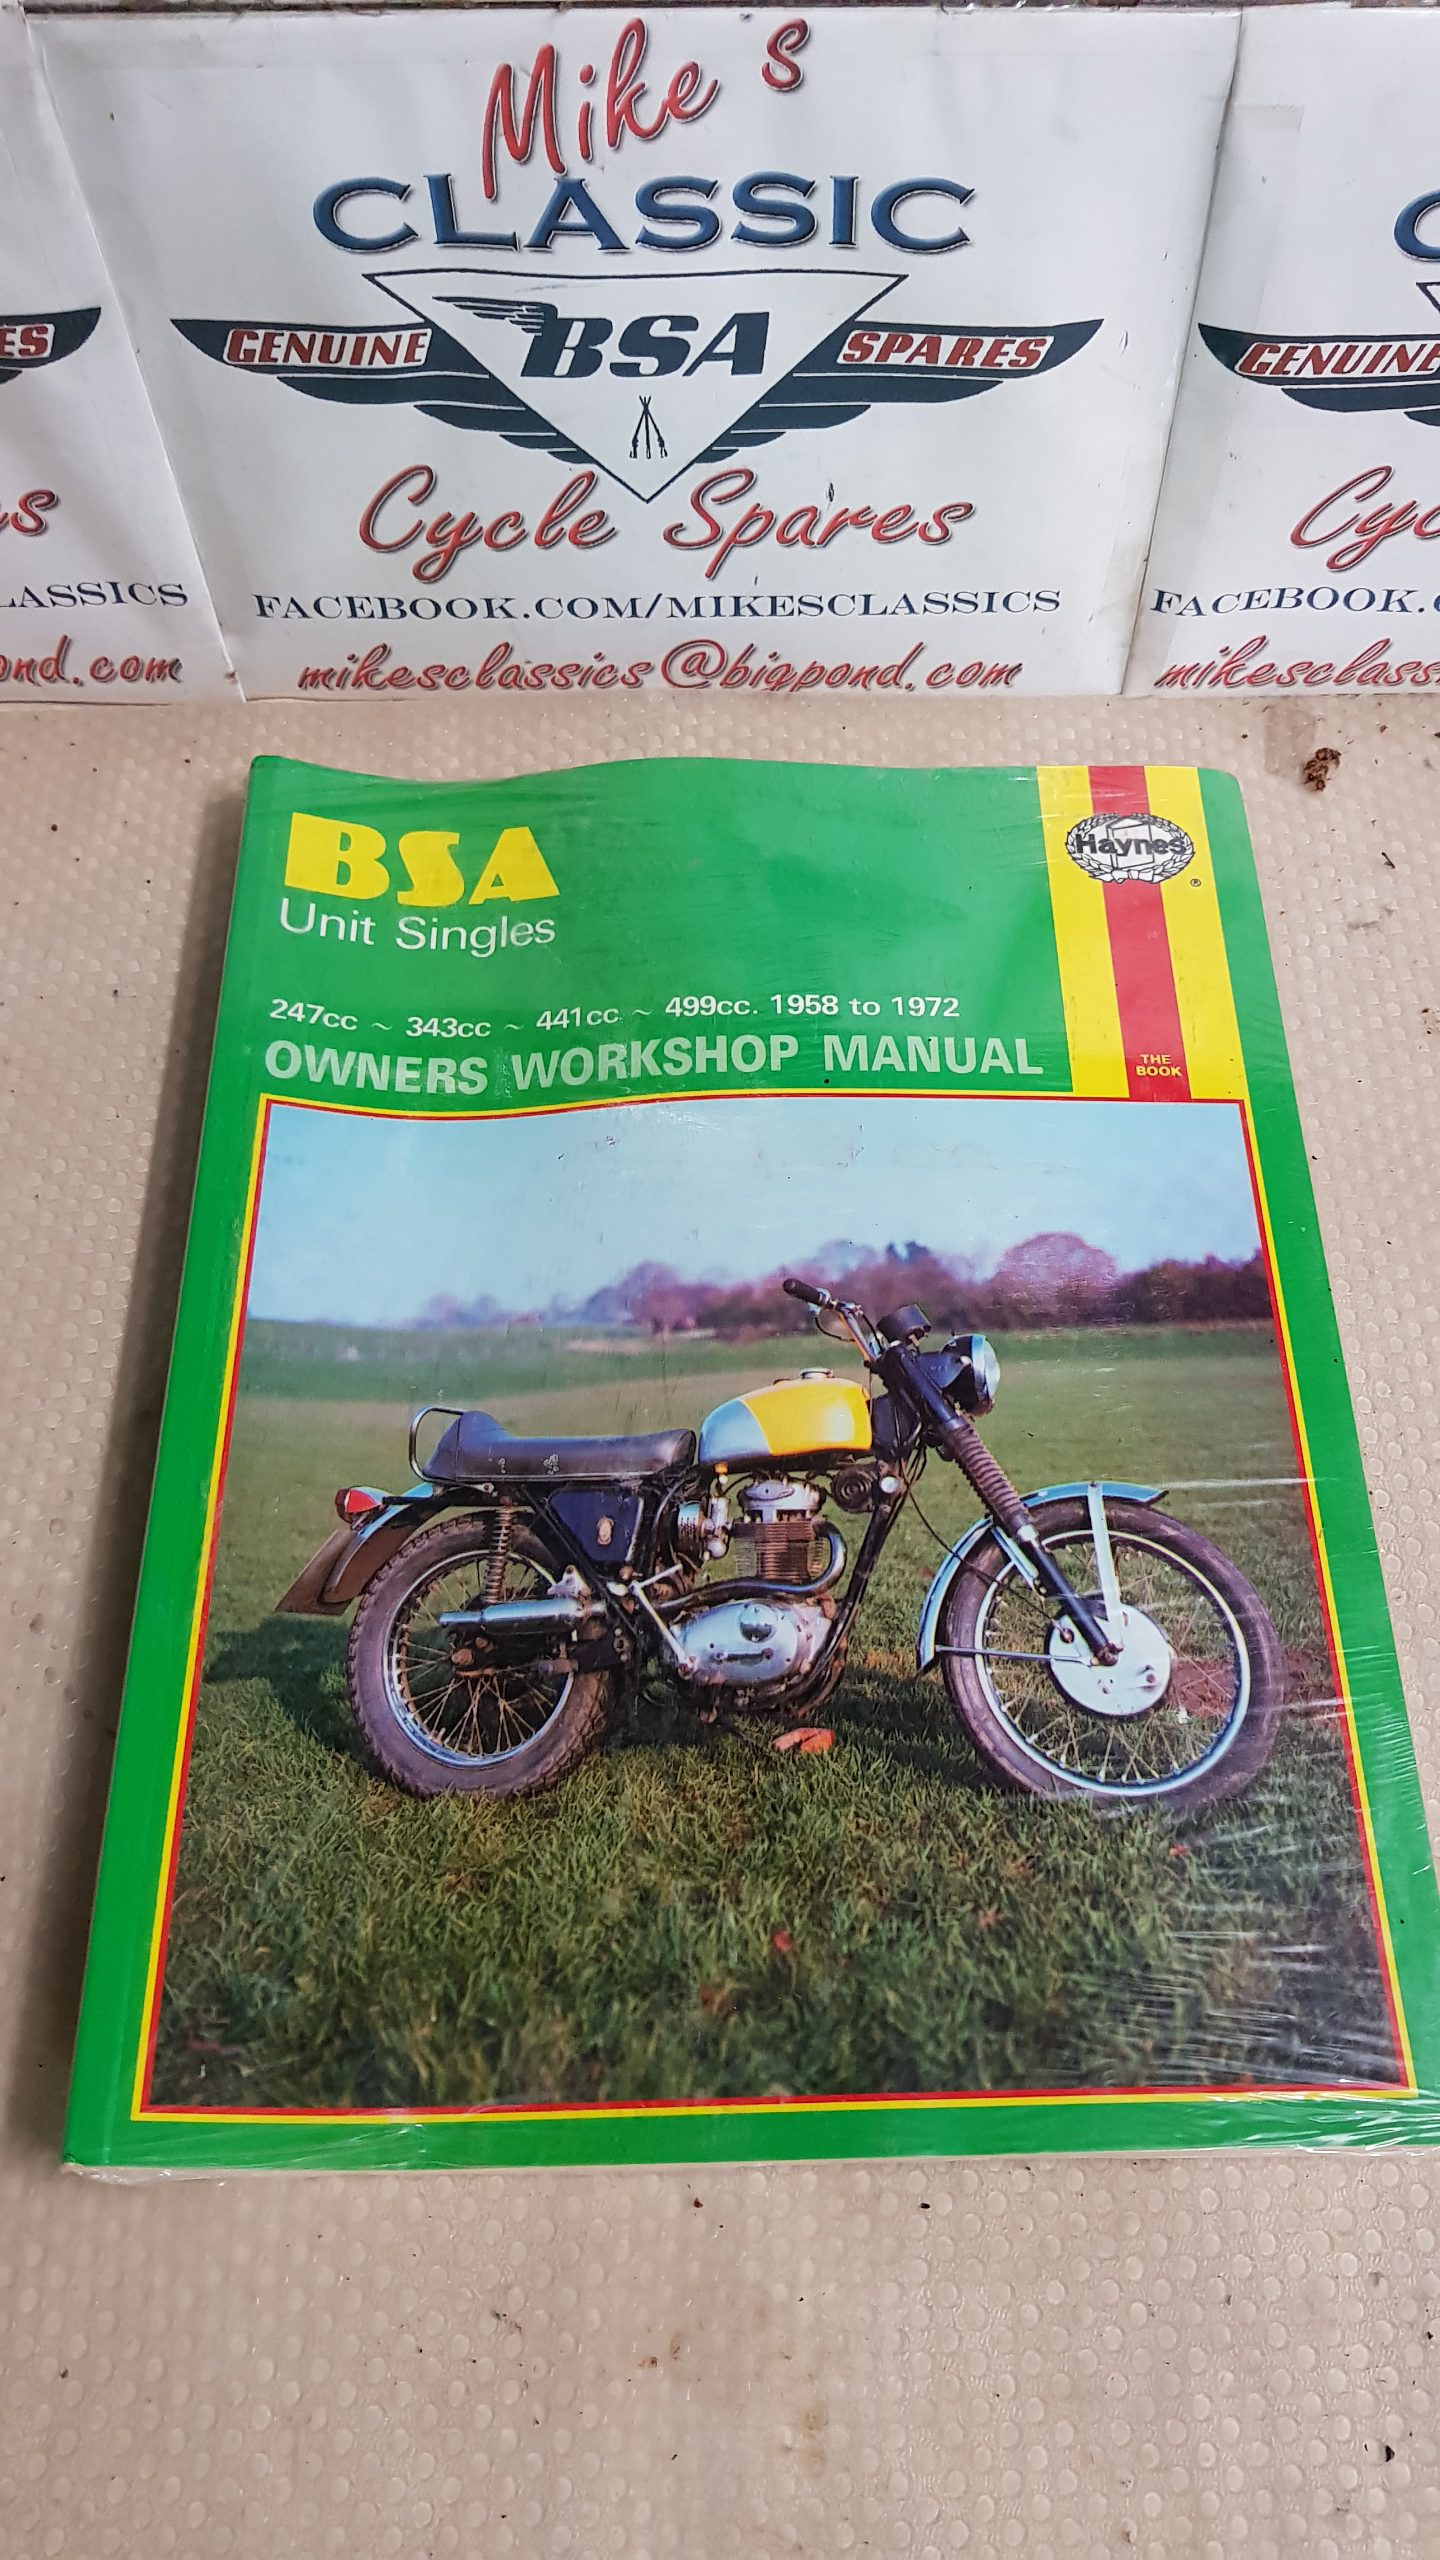 NEW HAYNES BSA UNIT SINGLES OWNERS WORKSHOP MANUAL C15 B25 C25 B40 B44 B50